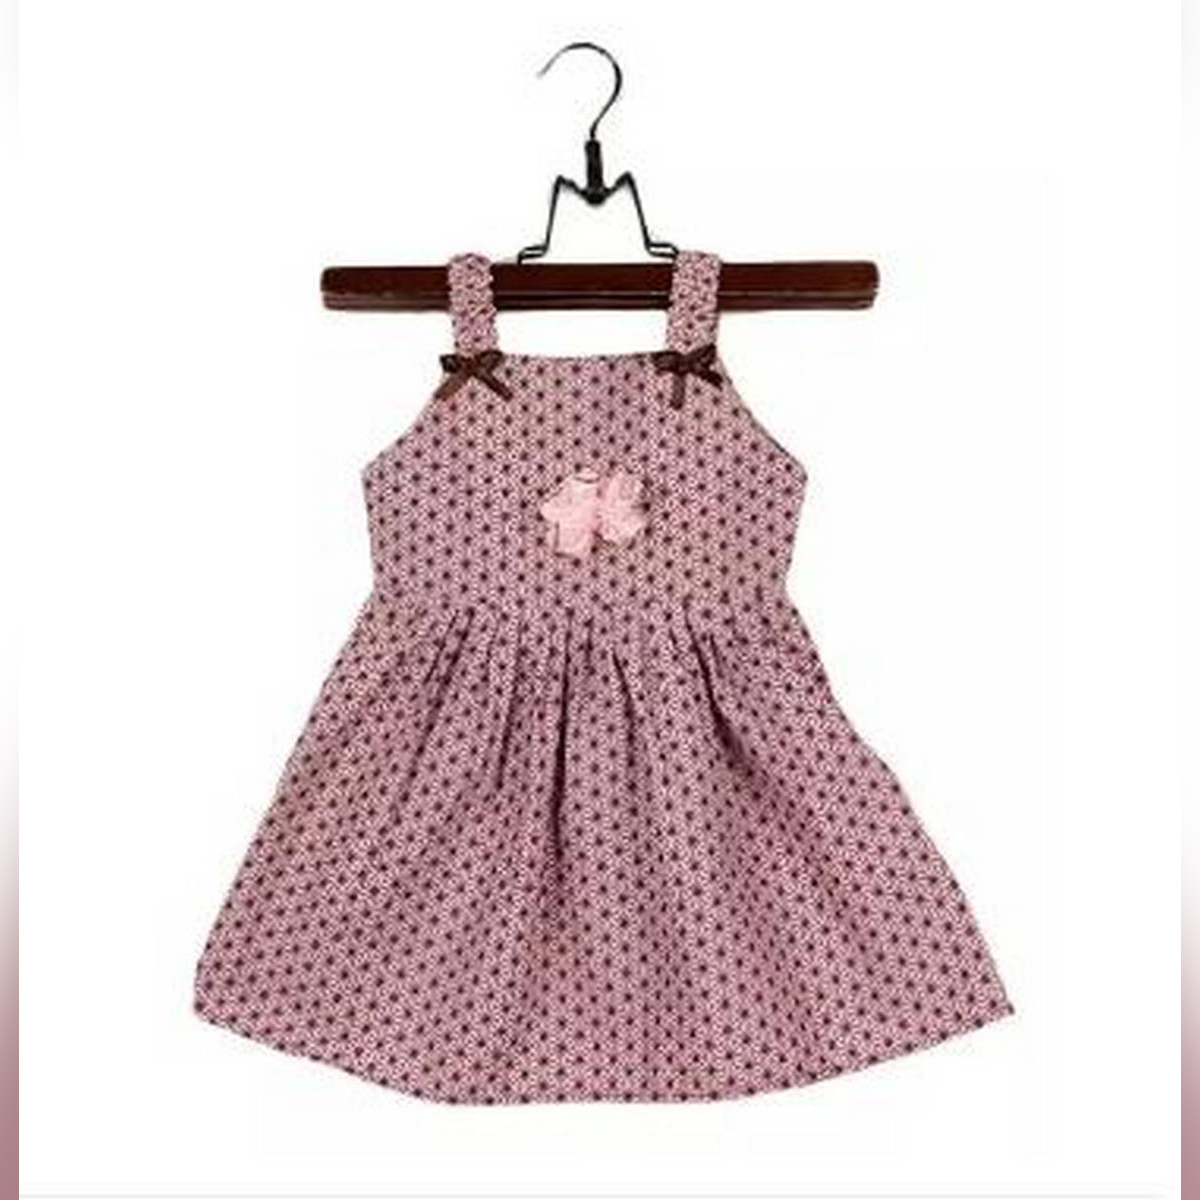 Multi-Color Printed Cotton Frock For Girls